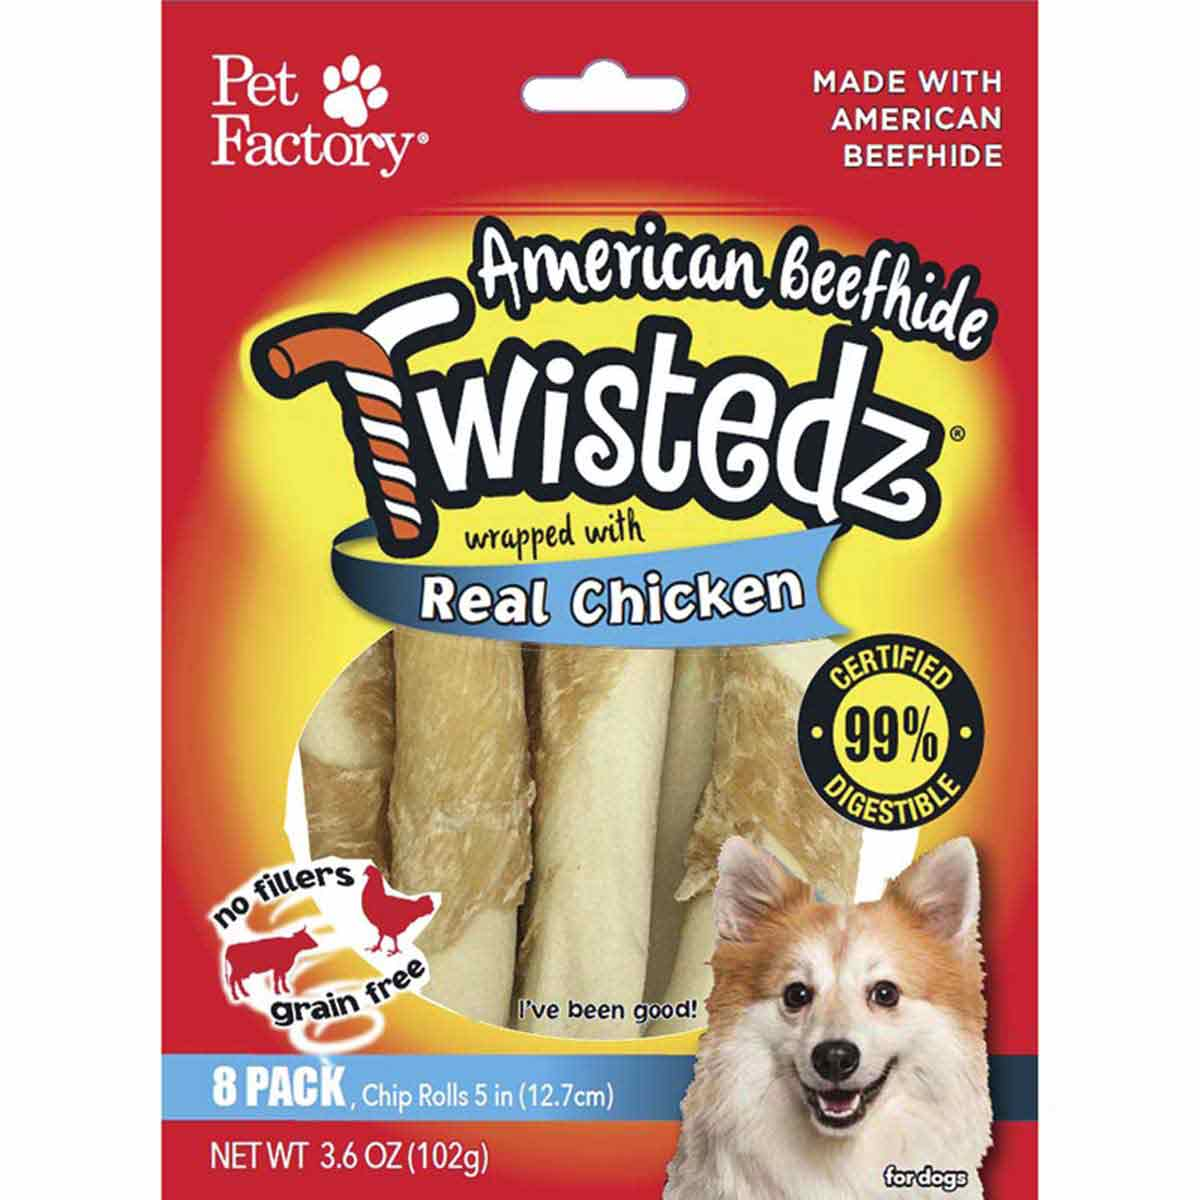 Pet Factory Twistedz Chicken 5 inch Rolls 8 Pack